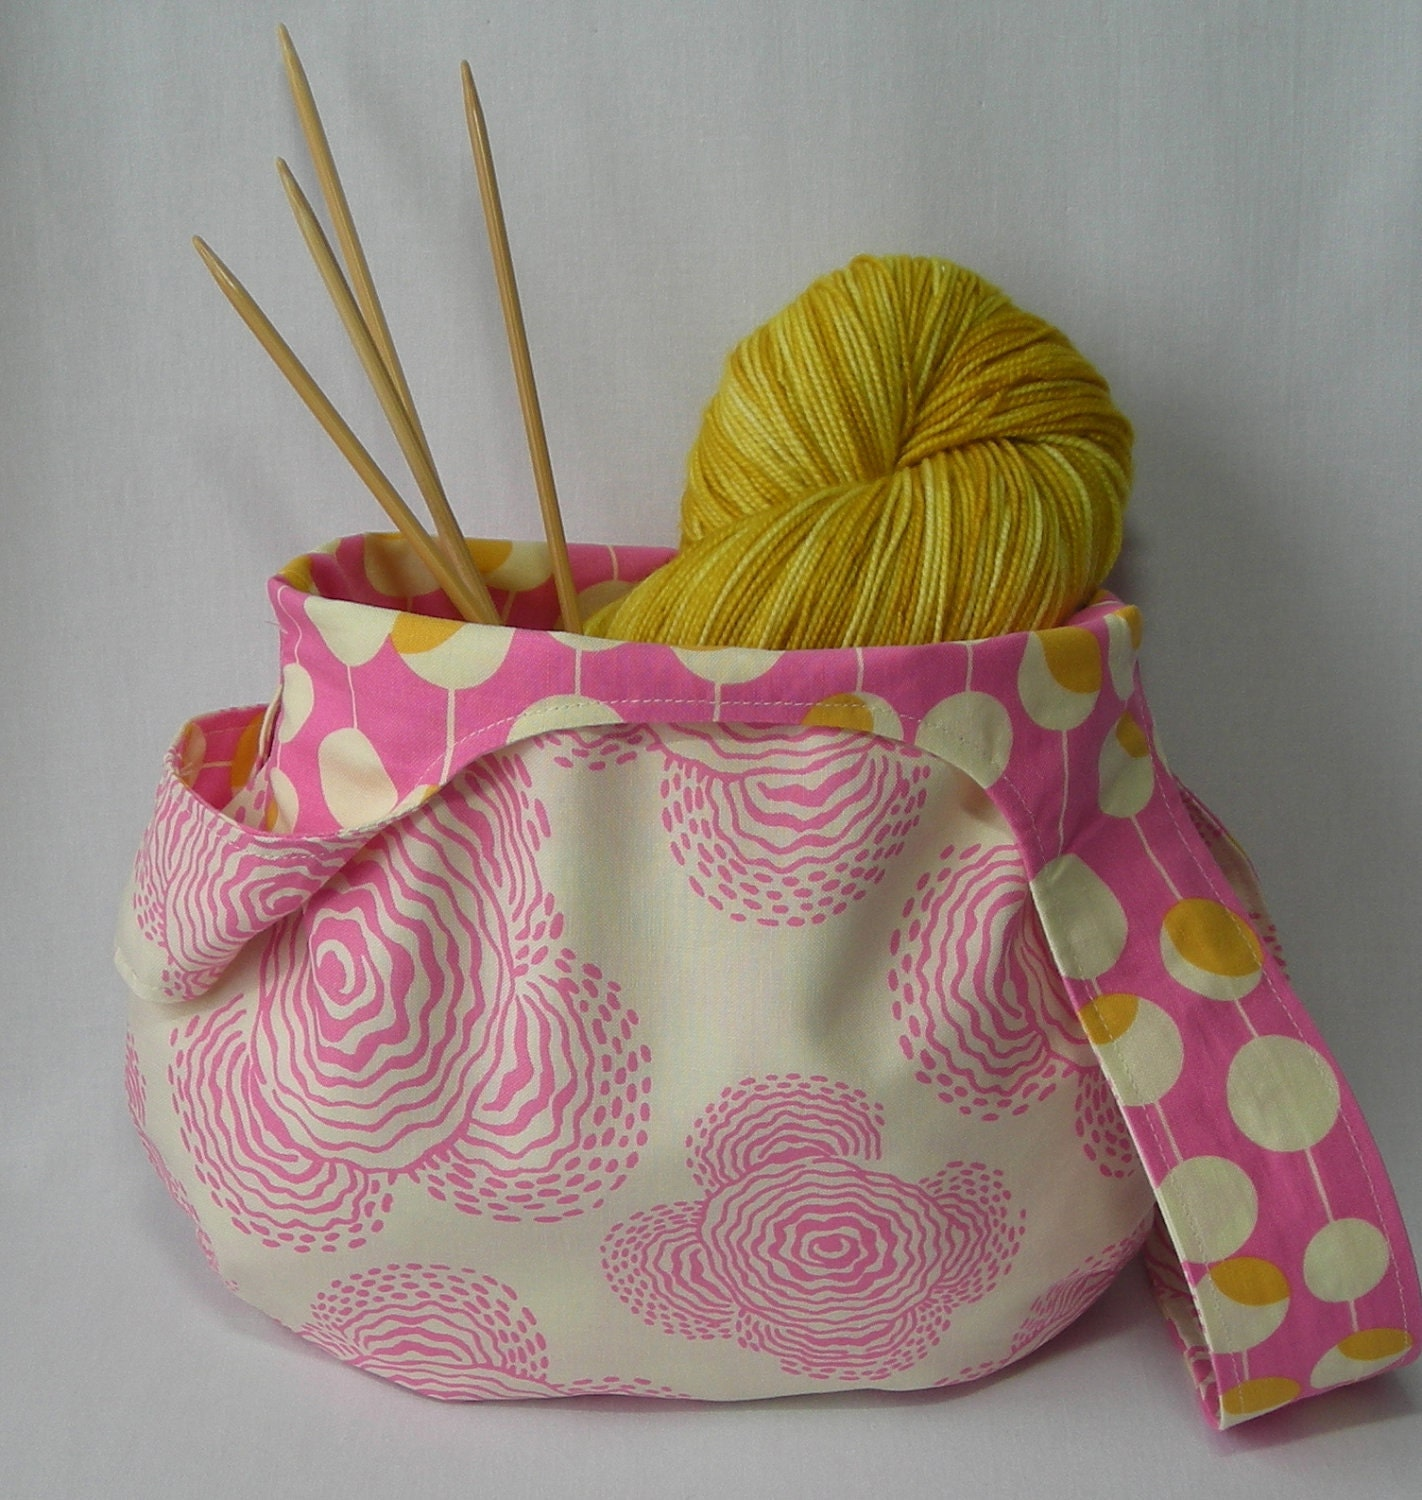 Knitting Project Bag Sewing Pattern : Knitting Project Bag Crochet Amigurumi Project Bag